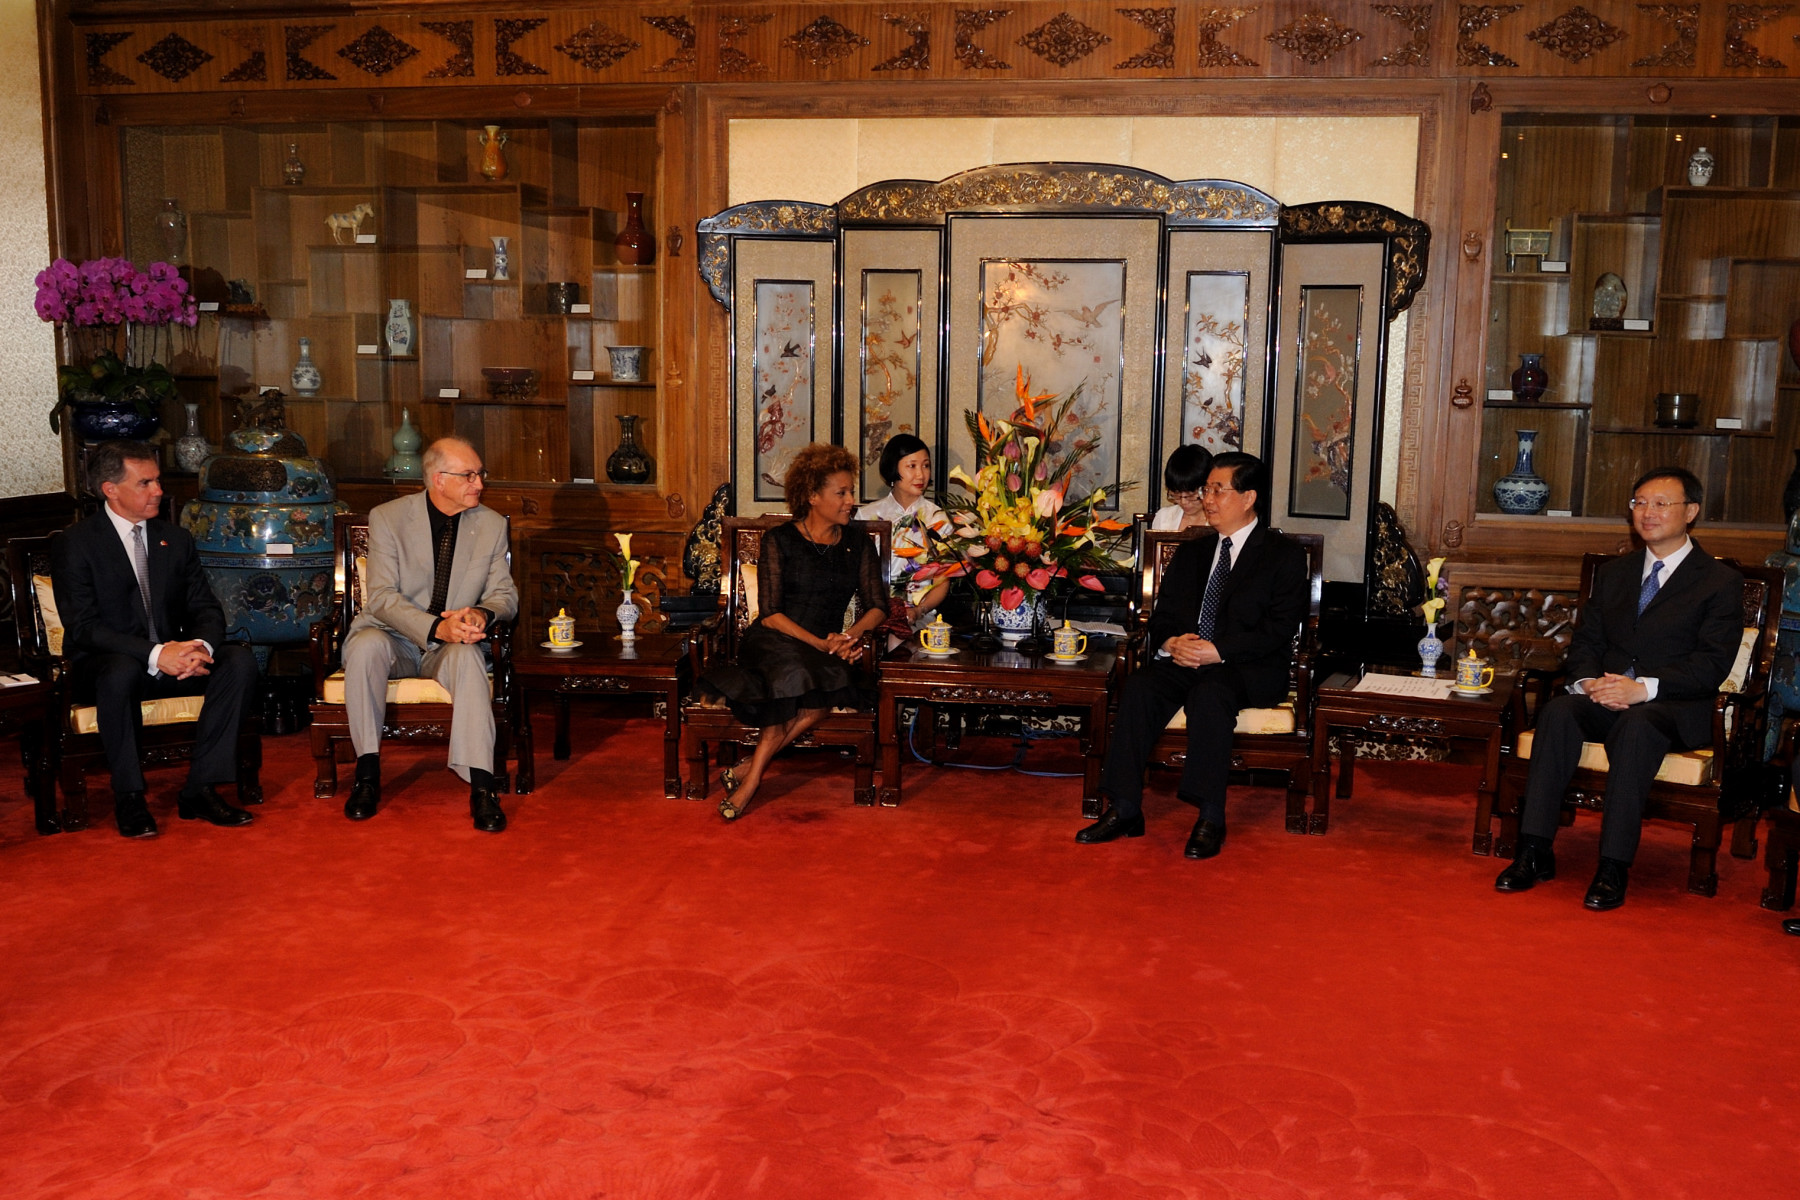 The Canadian delegation was also invite to the meeting.